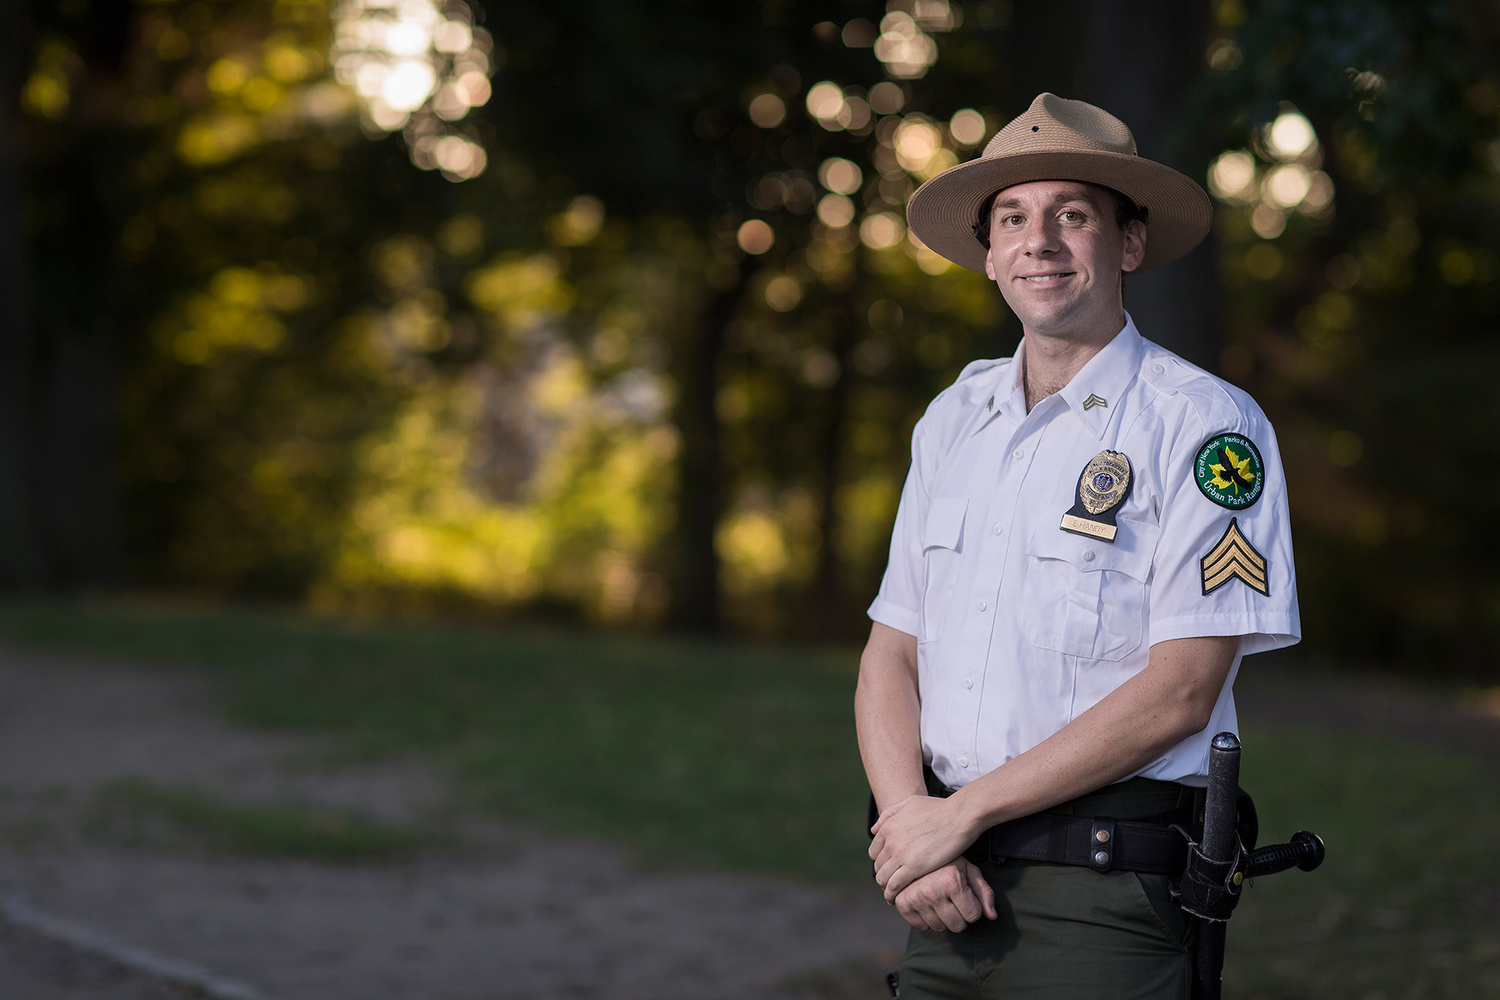 Park ranger shot with Canon EF 85mm F/1.2L II USM.